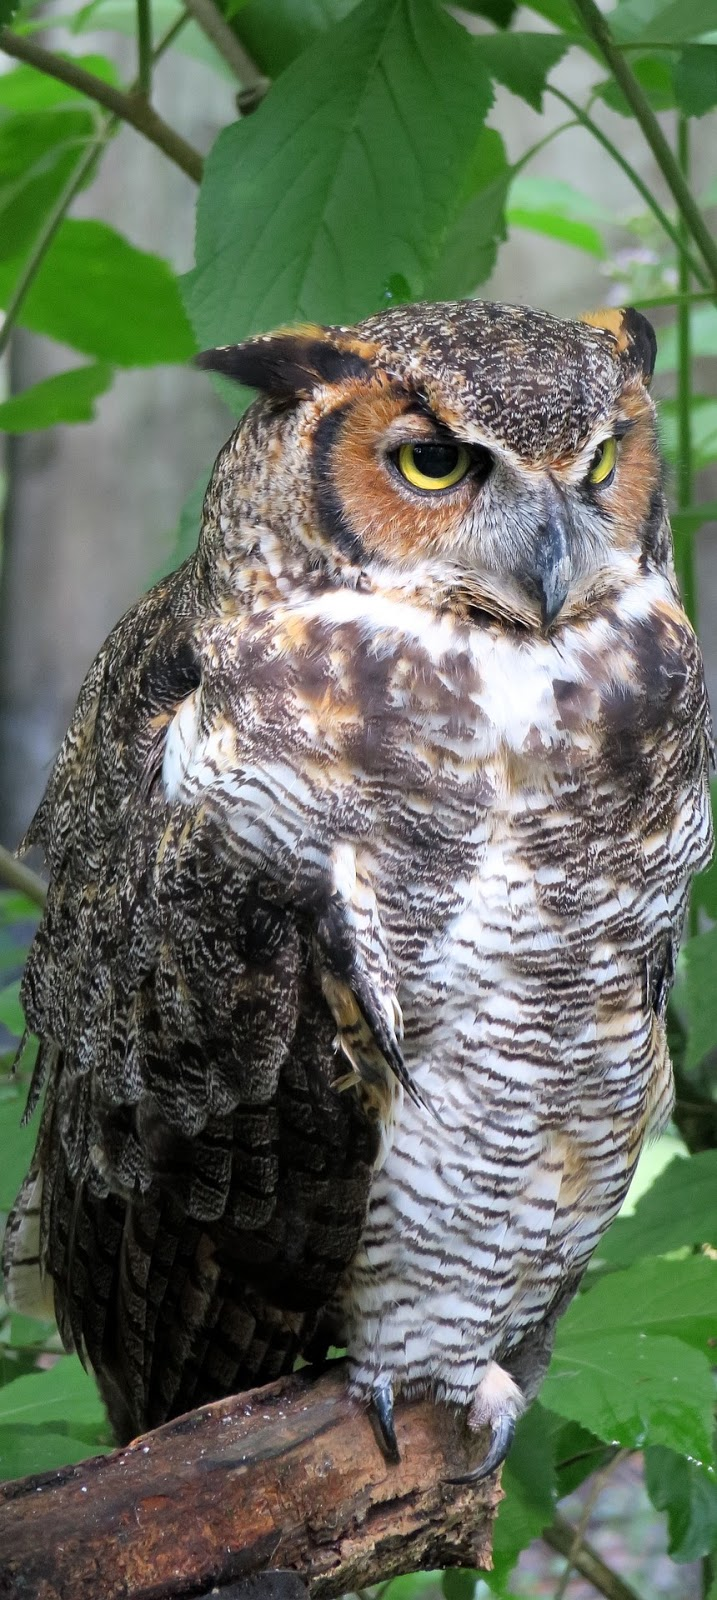 Portrait photo of an owl.